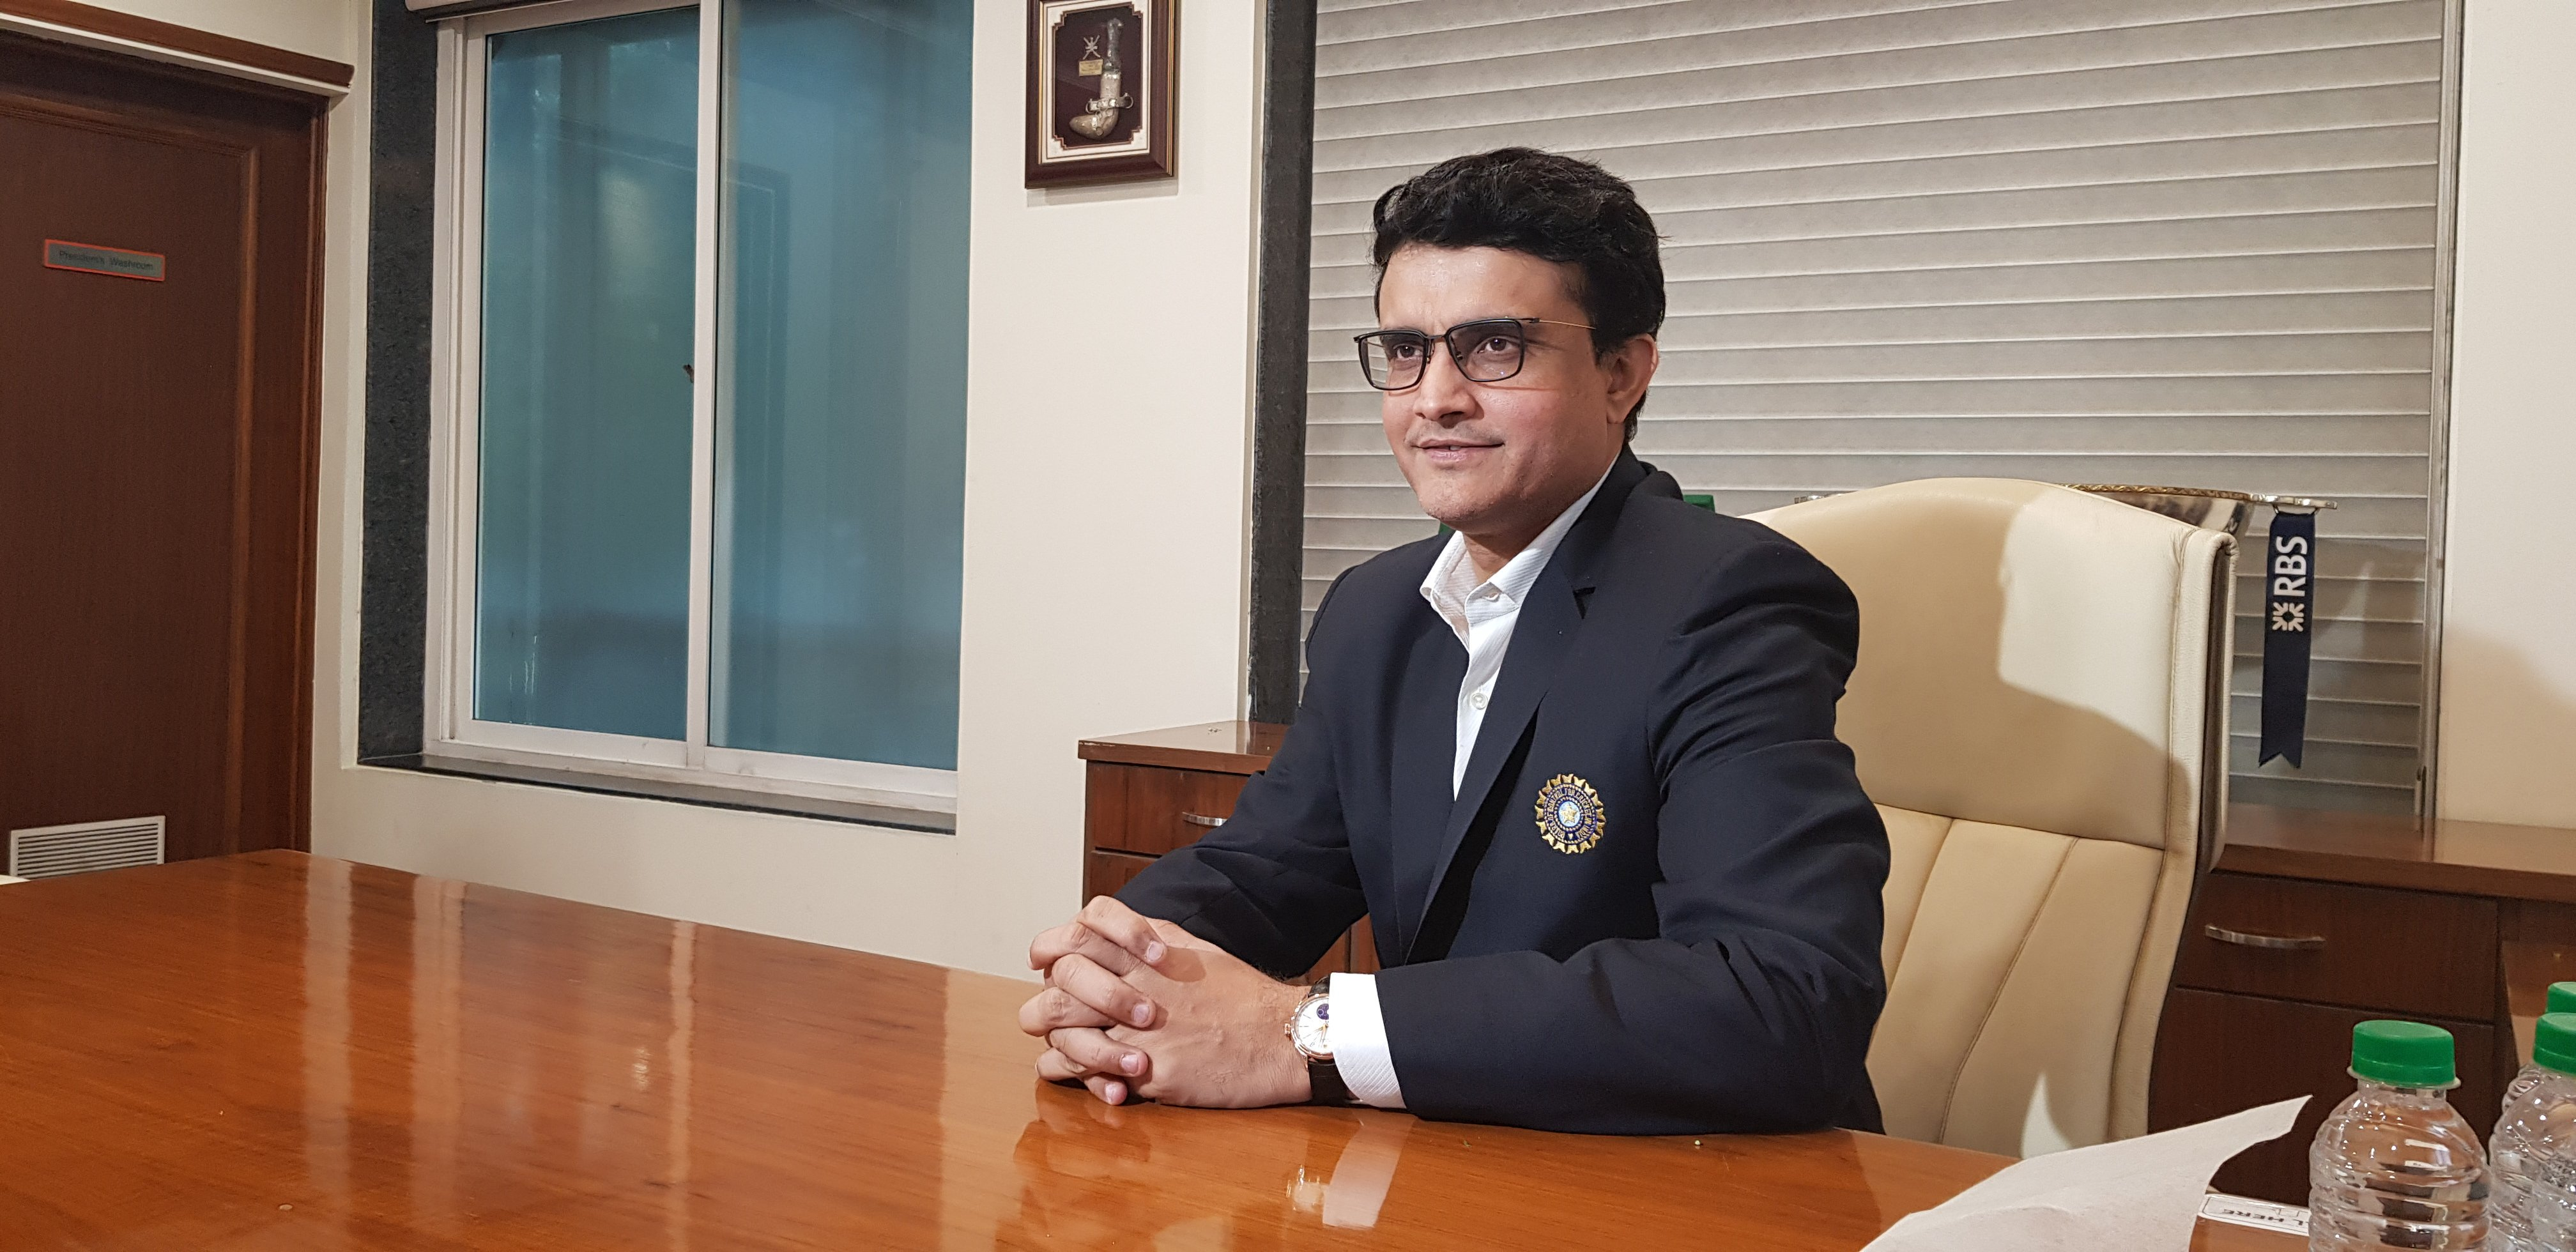 Sourav Ganguly is the 39th President of the BCCI. Photo courtesy: Twitter/@BCCI